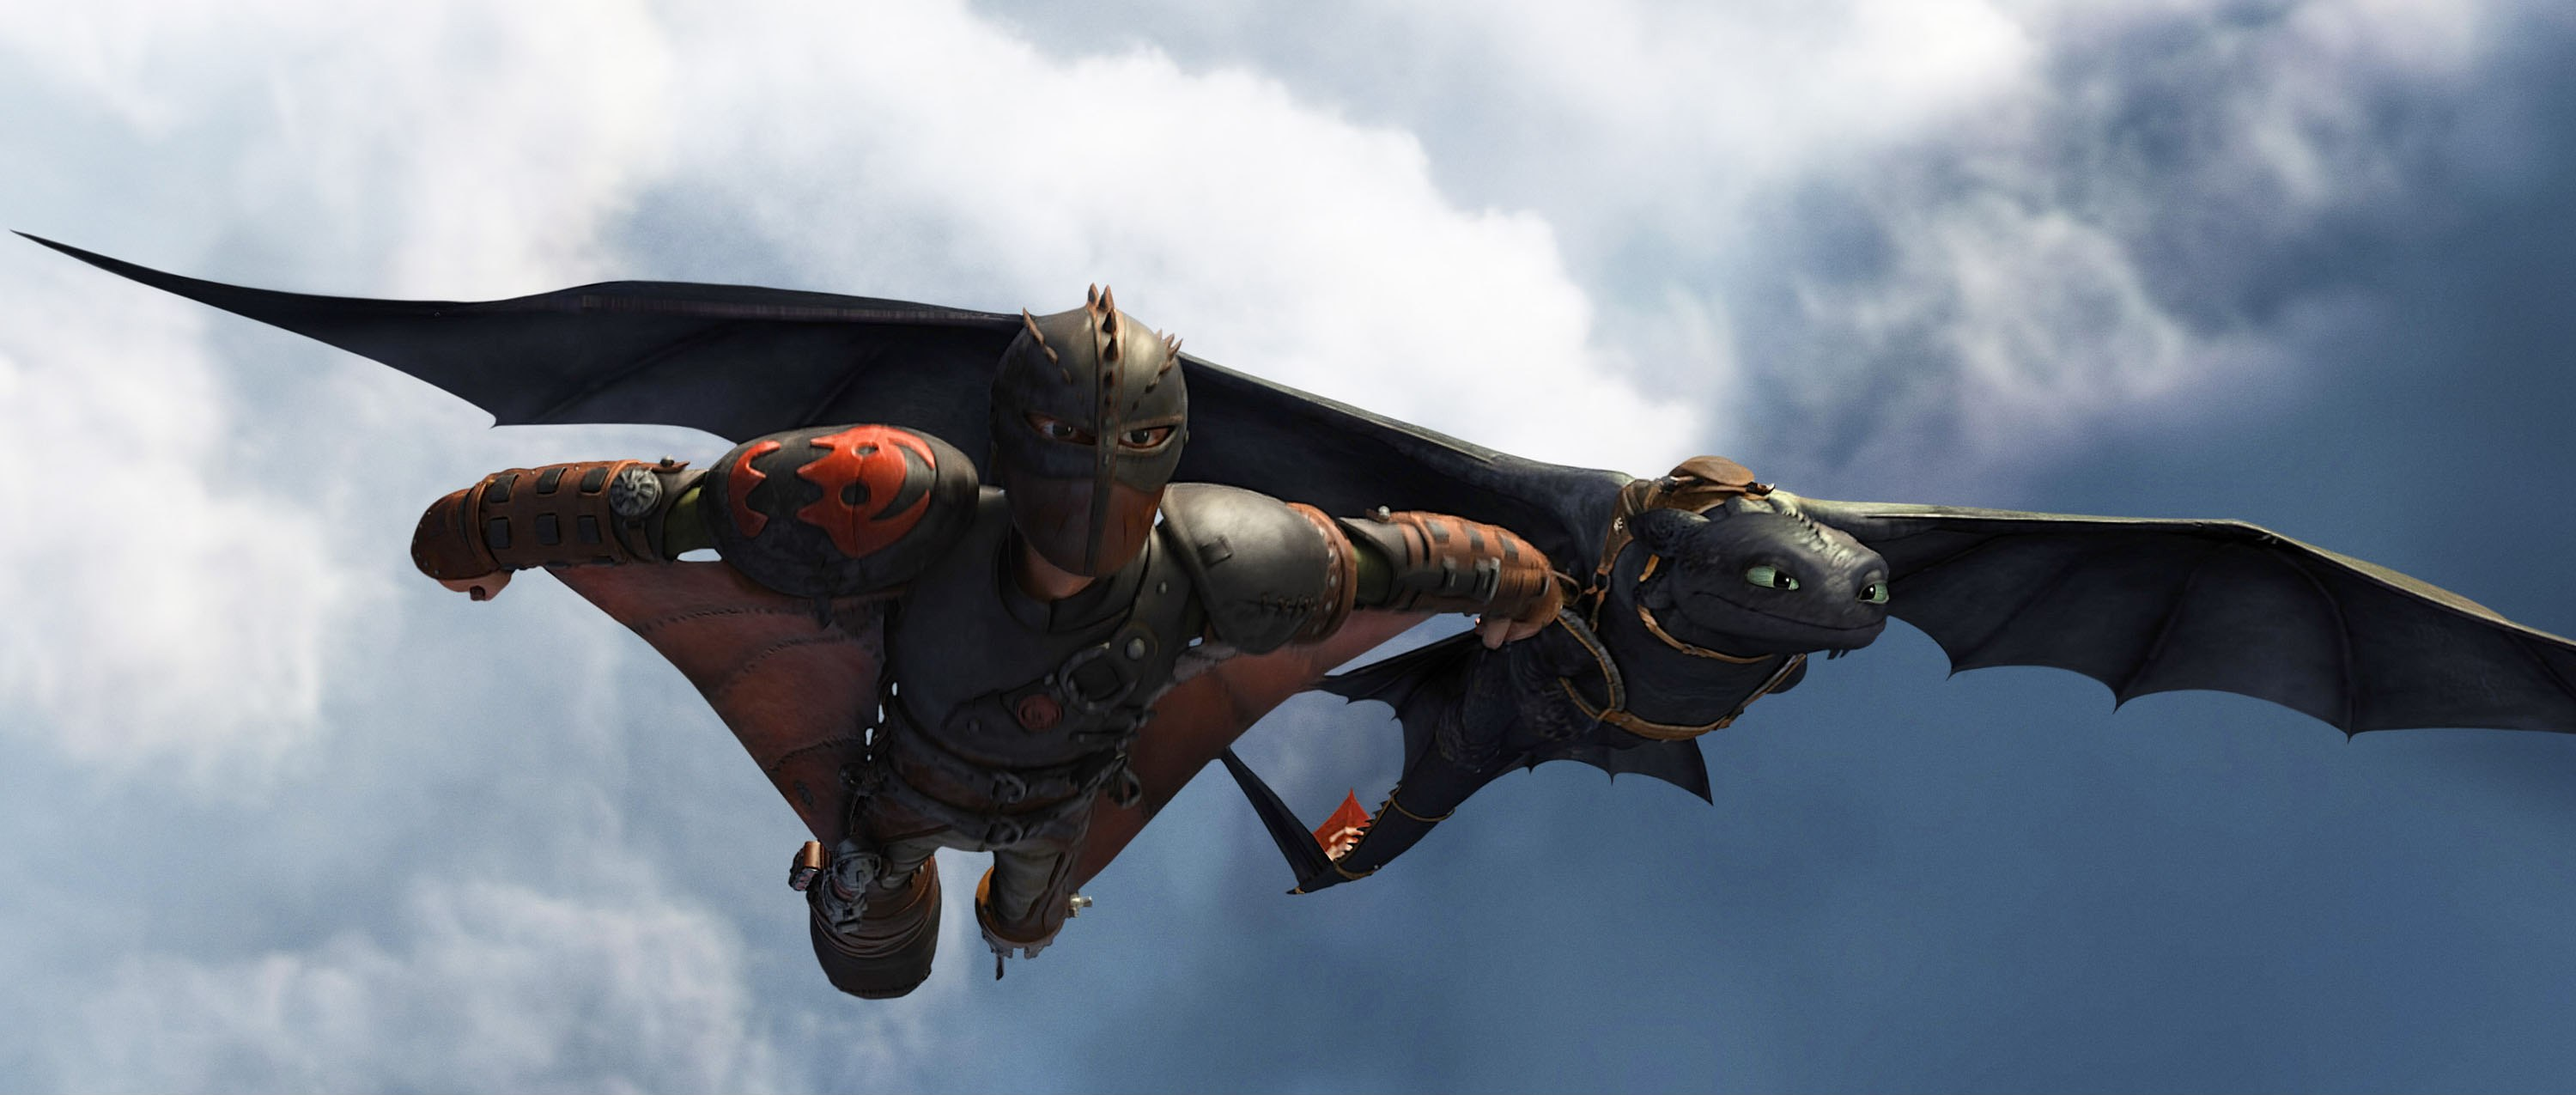 Dreamworks Animation Unveils New Title Synopsis For How To Train Your Dragon 3 Animation World Network